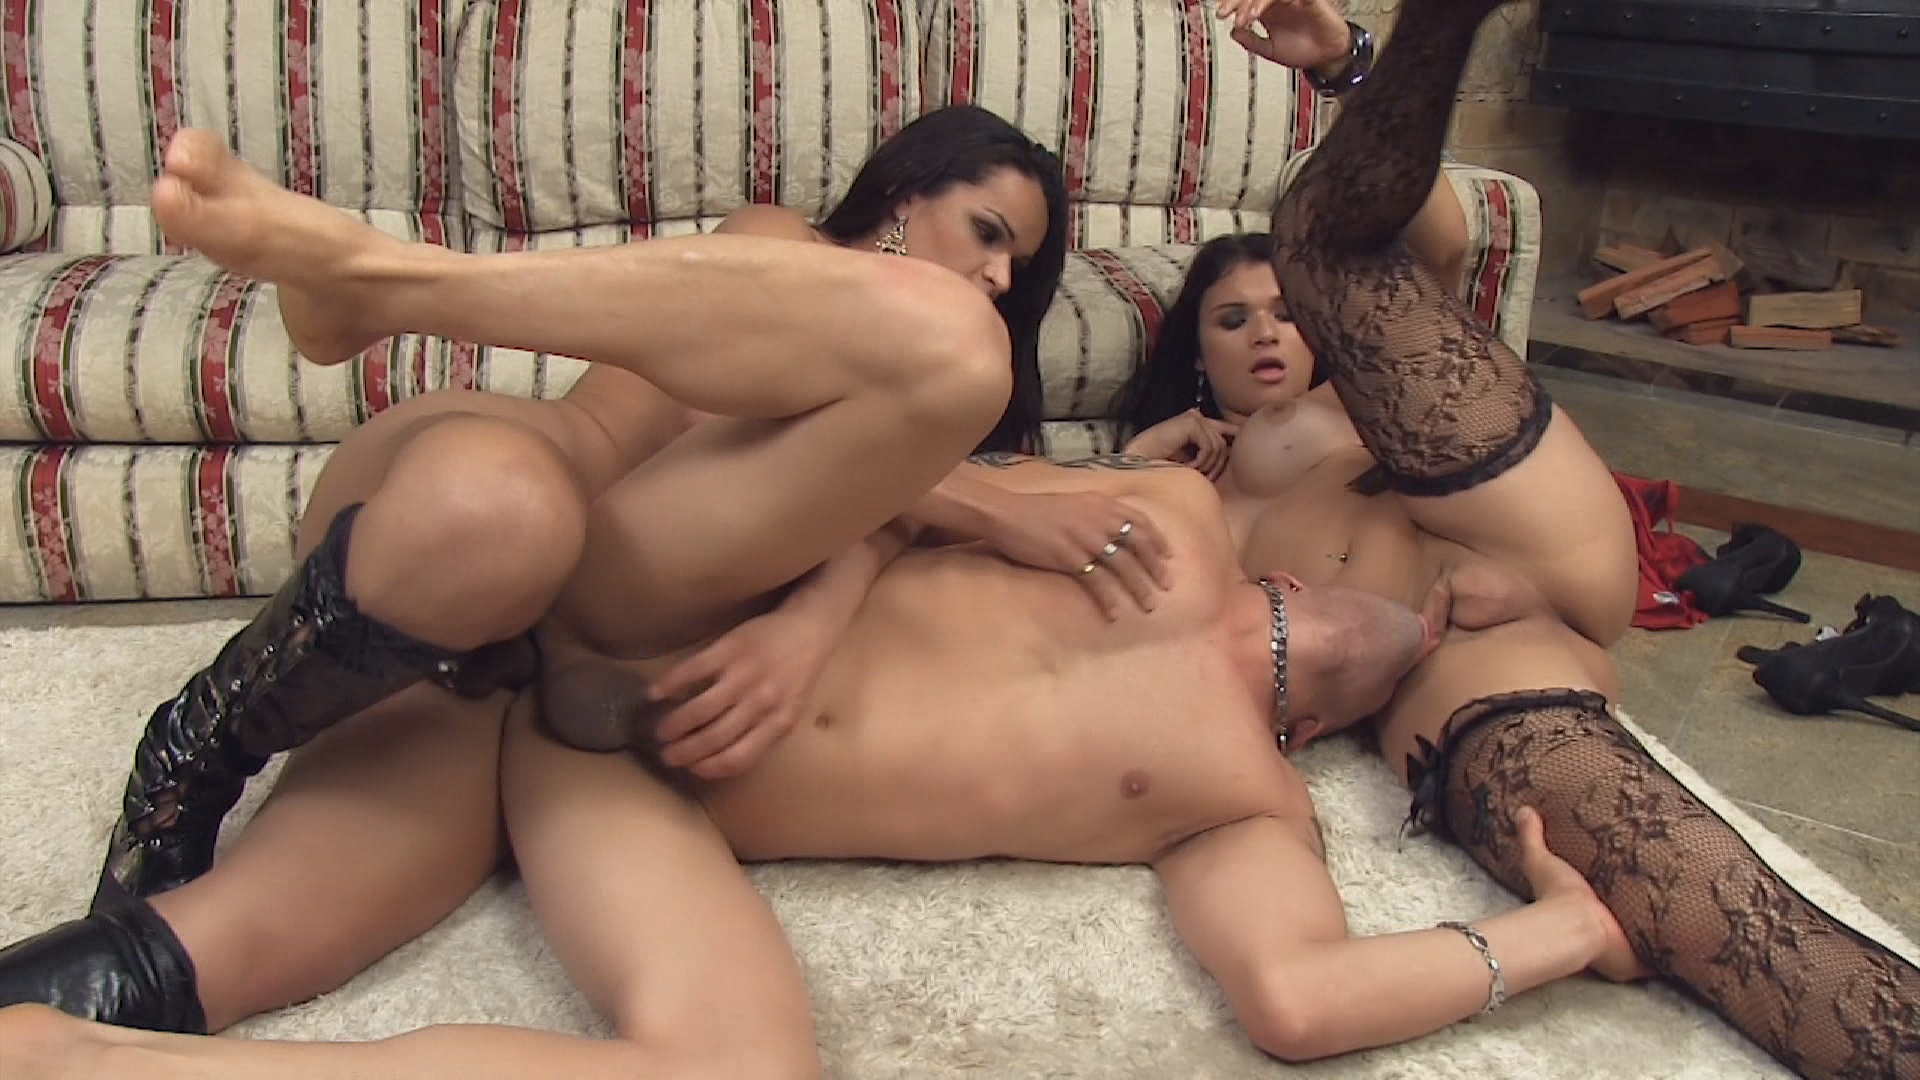 Monique gabriel blowjob video